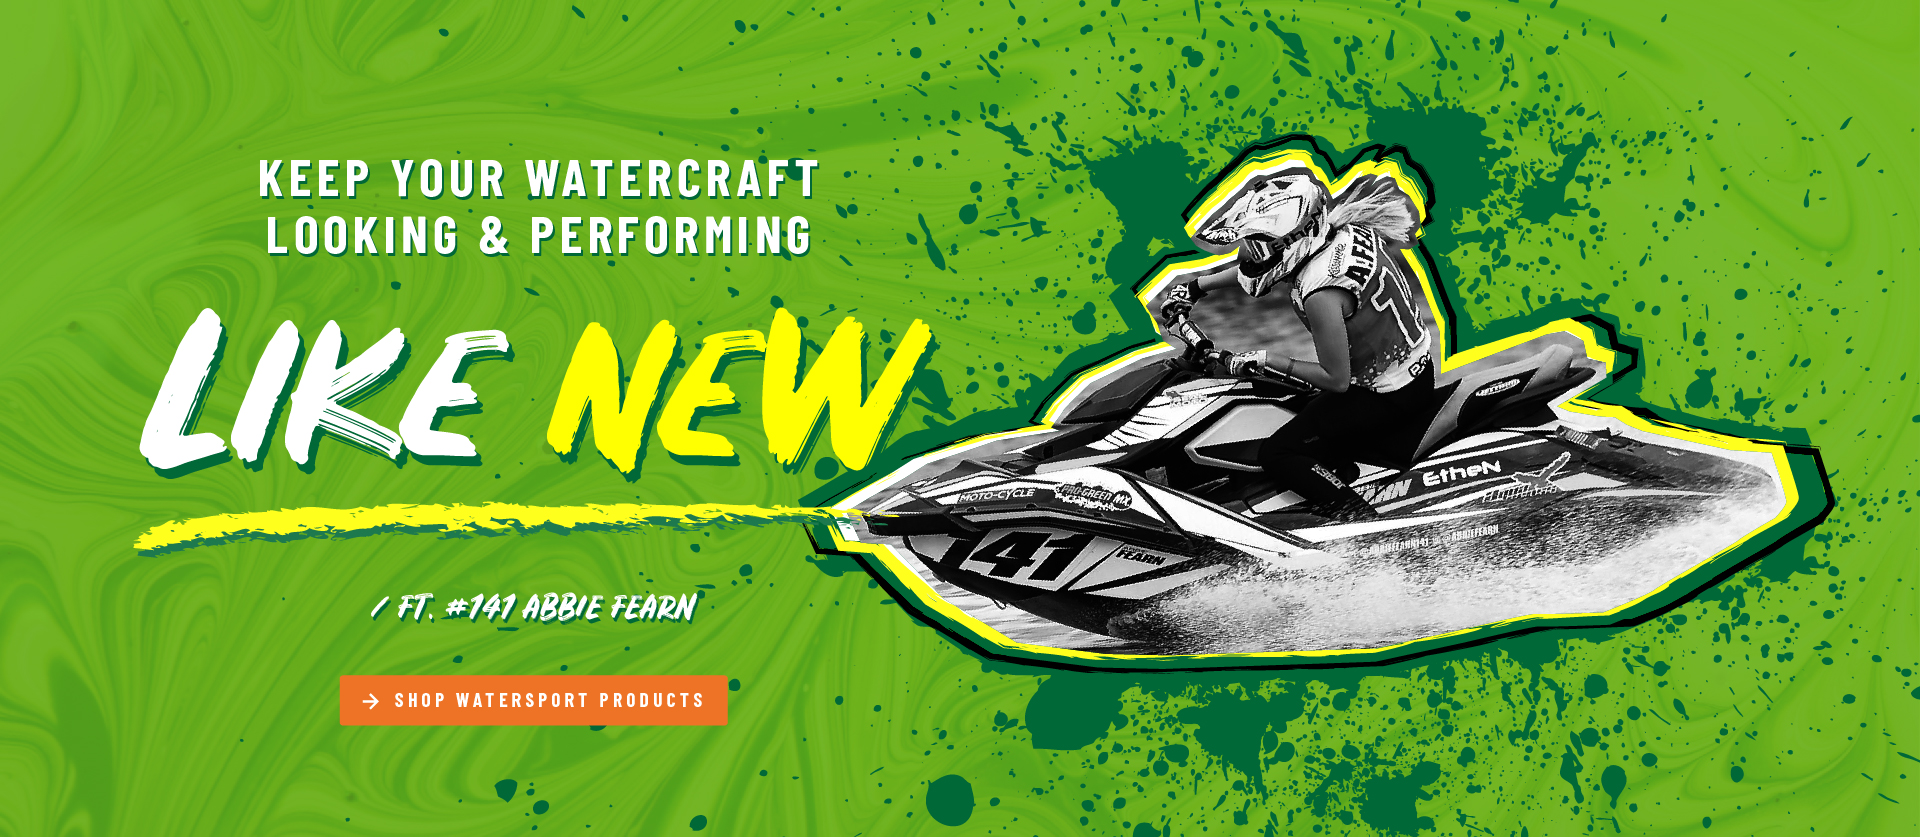 Watersport Products